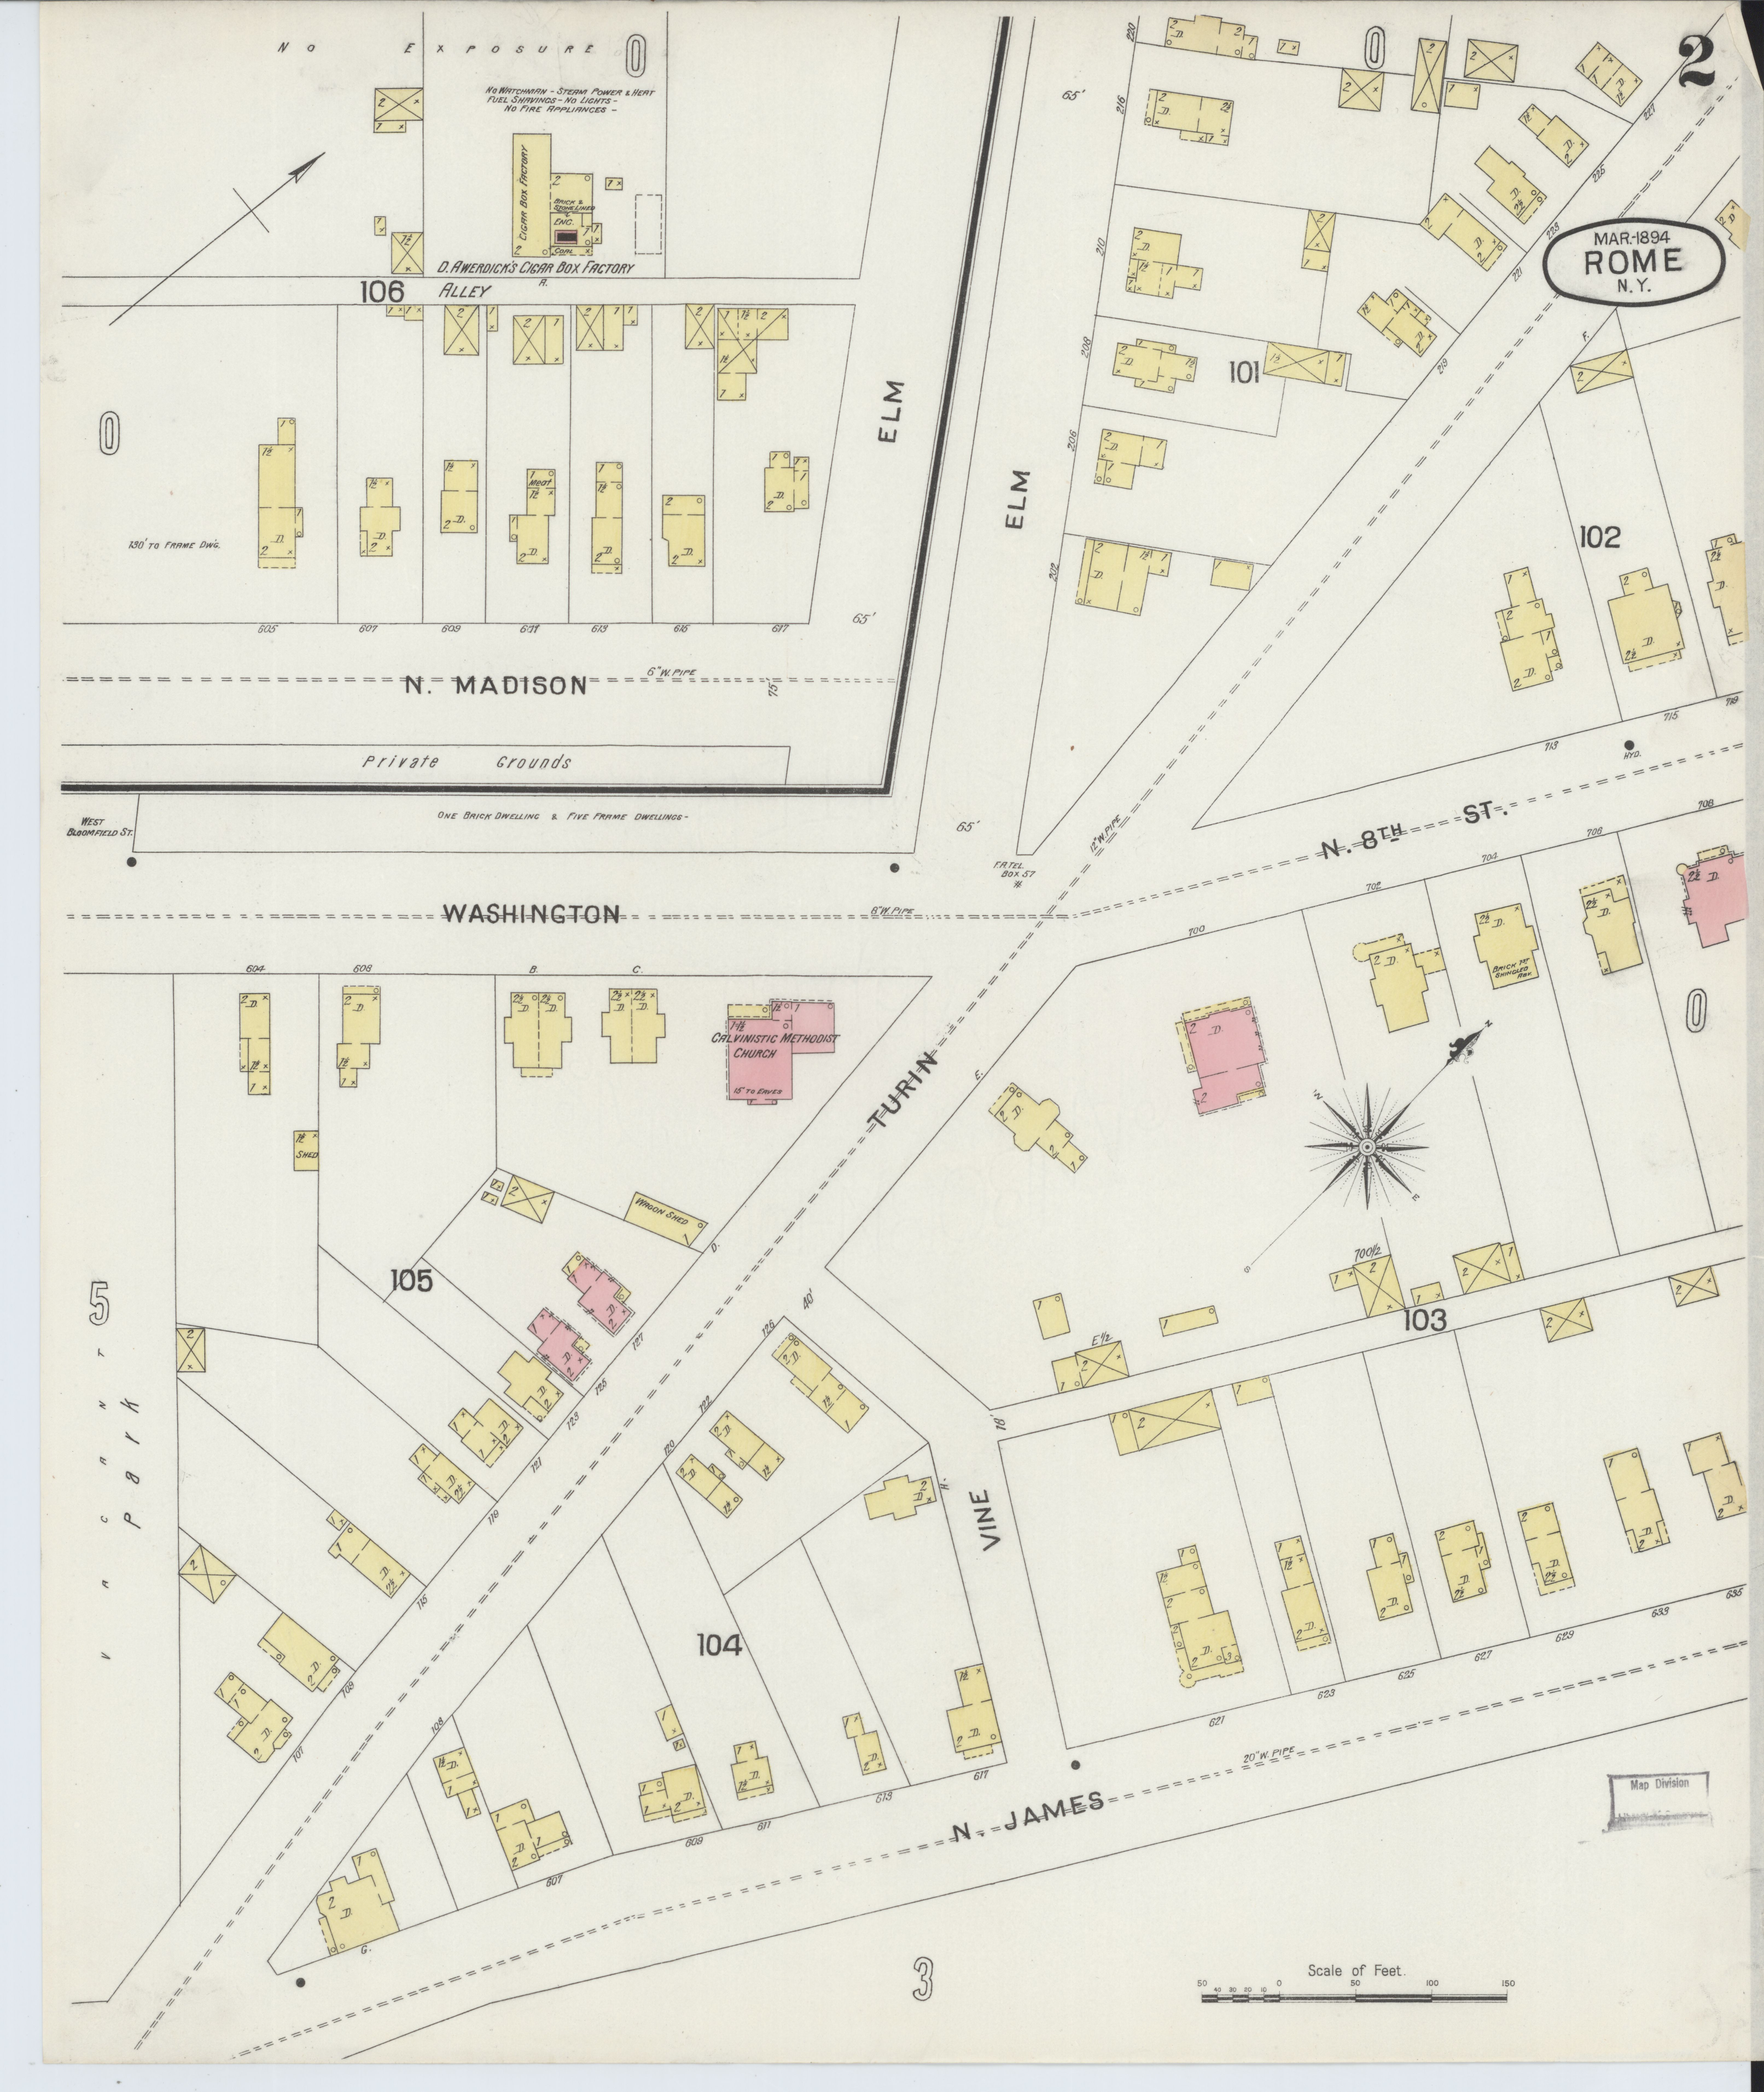 File Sanborn Fire Insurance Map from Rome eida County New York